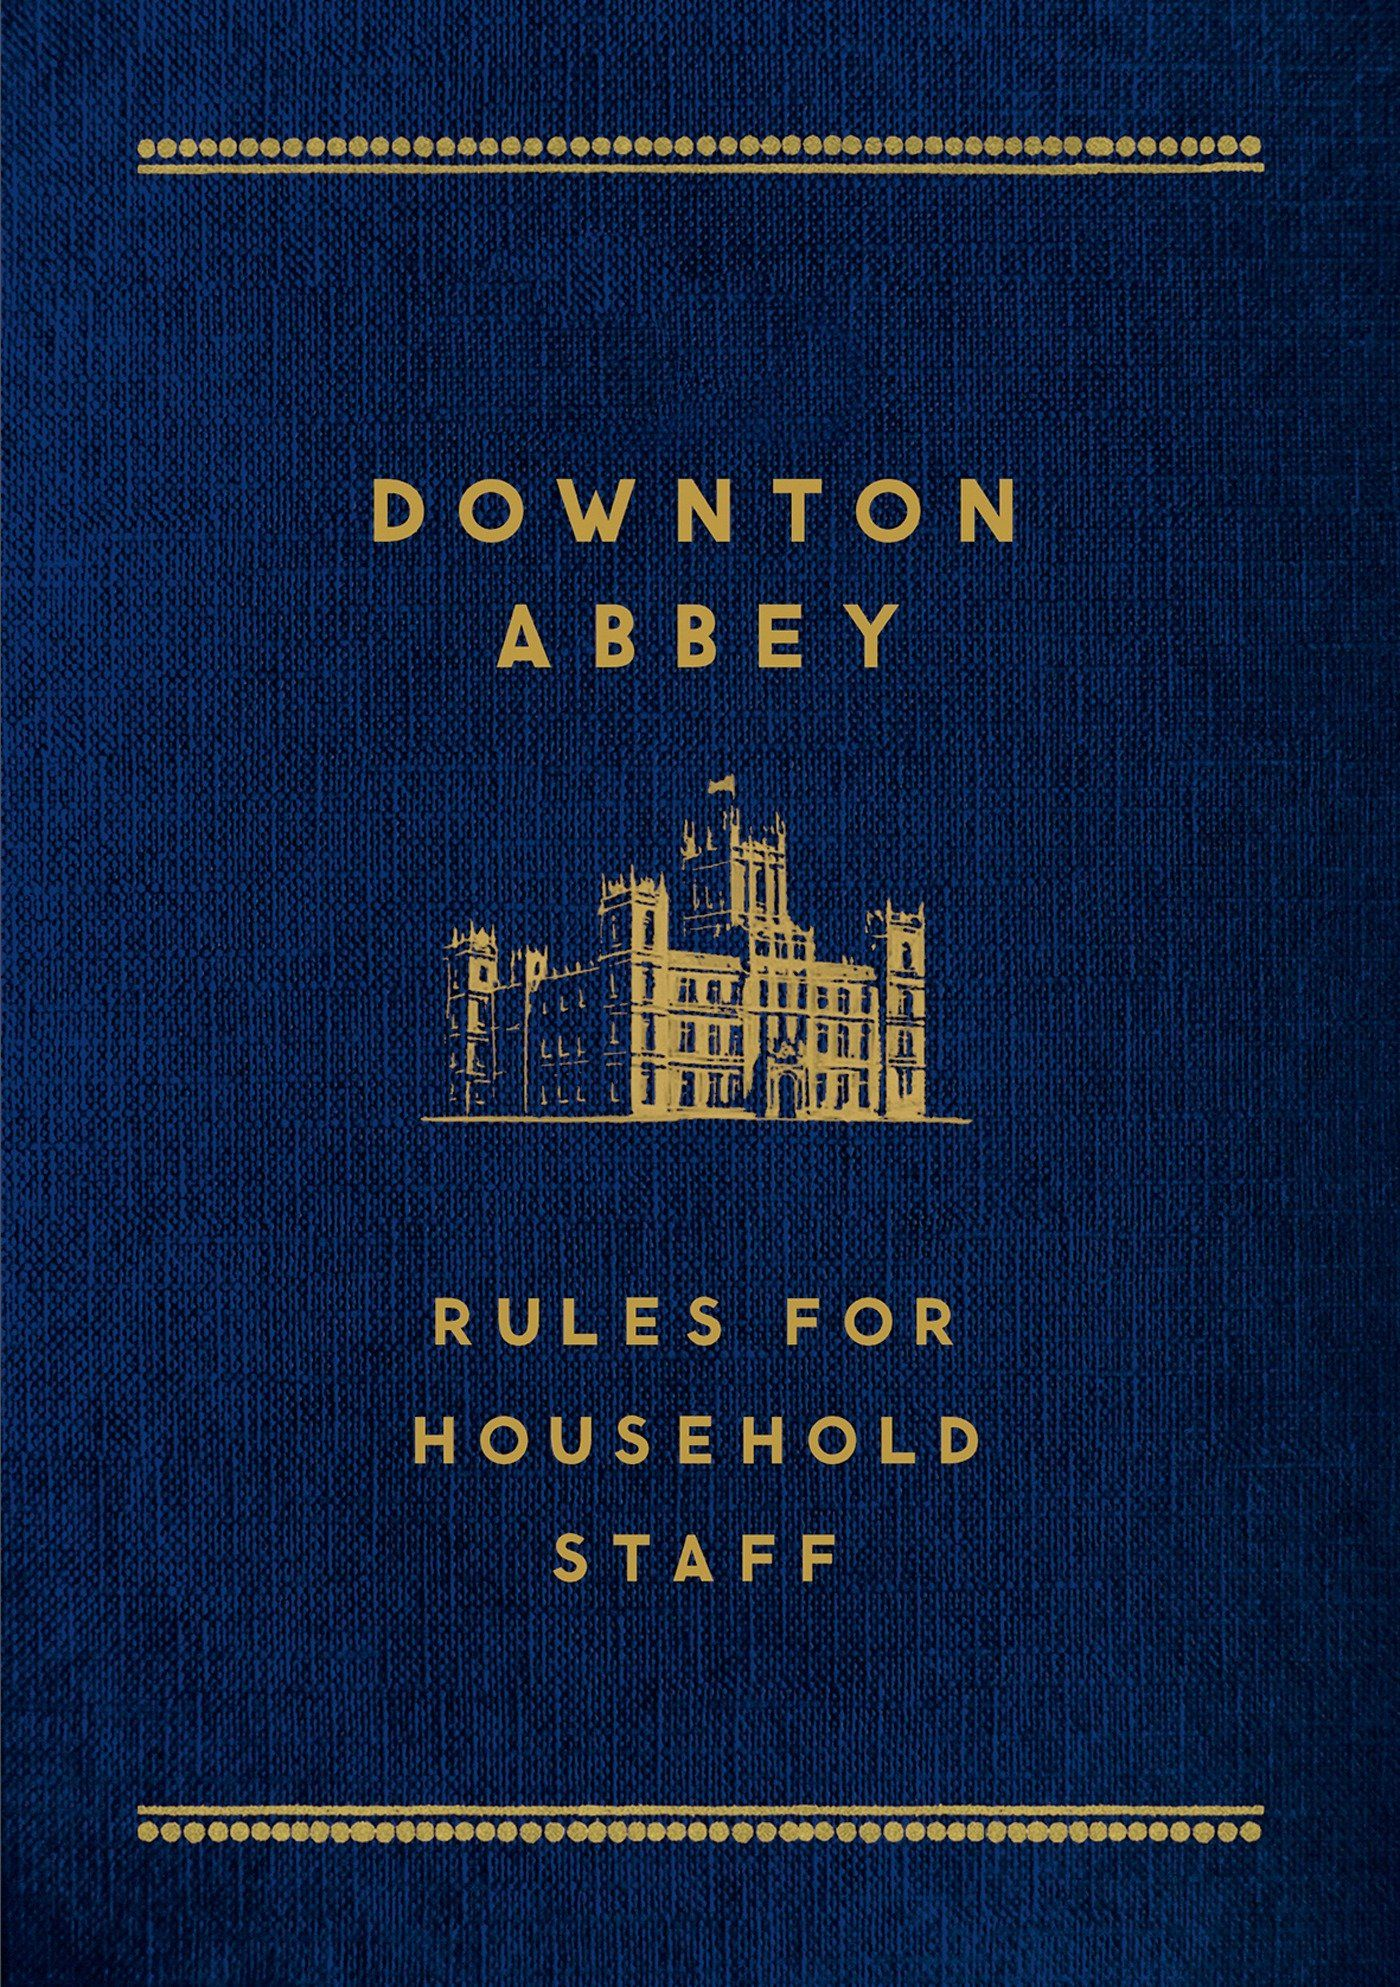 Downton abbey rules for household staff carson